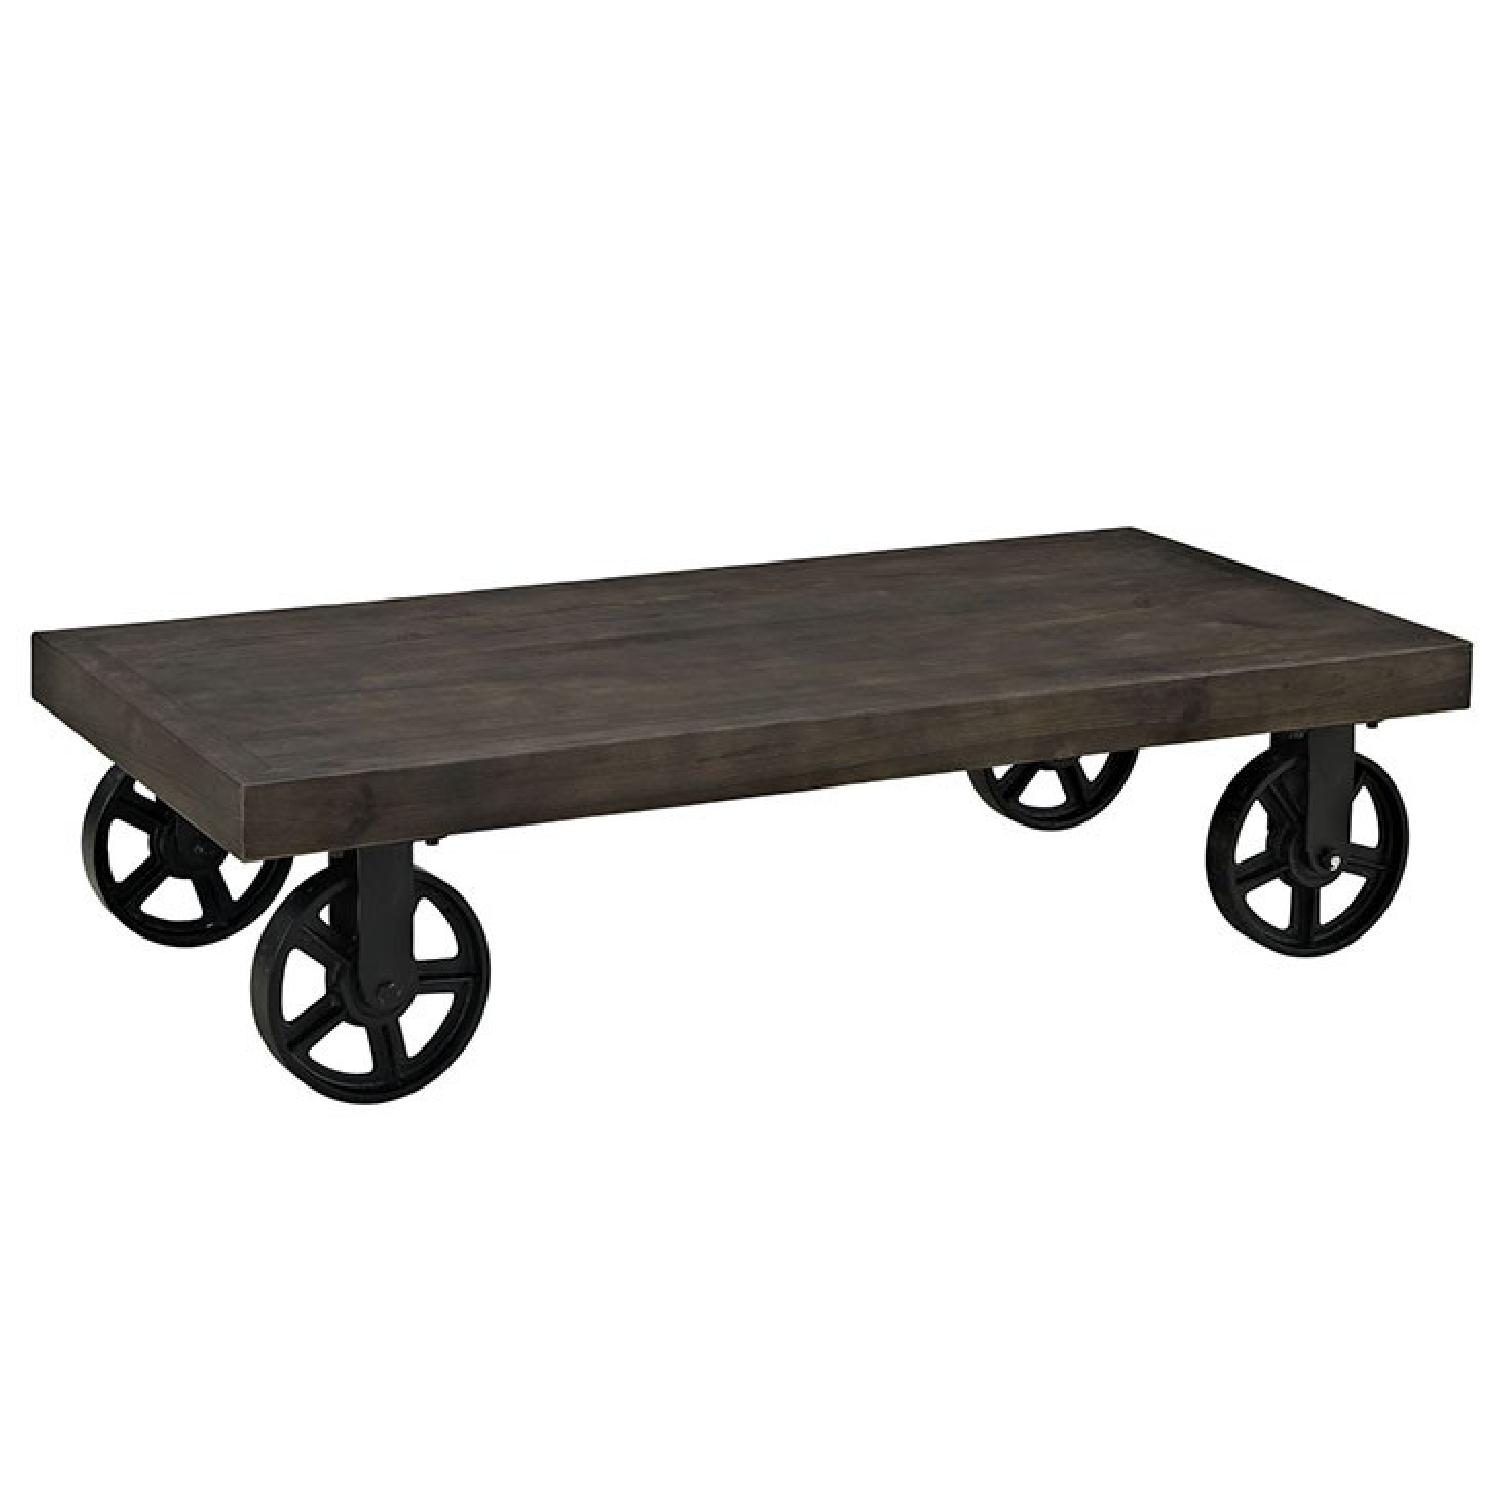 Ganso Wood Top Coffee Table in Black